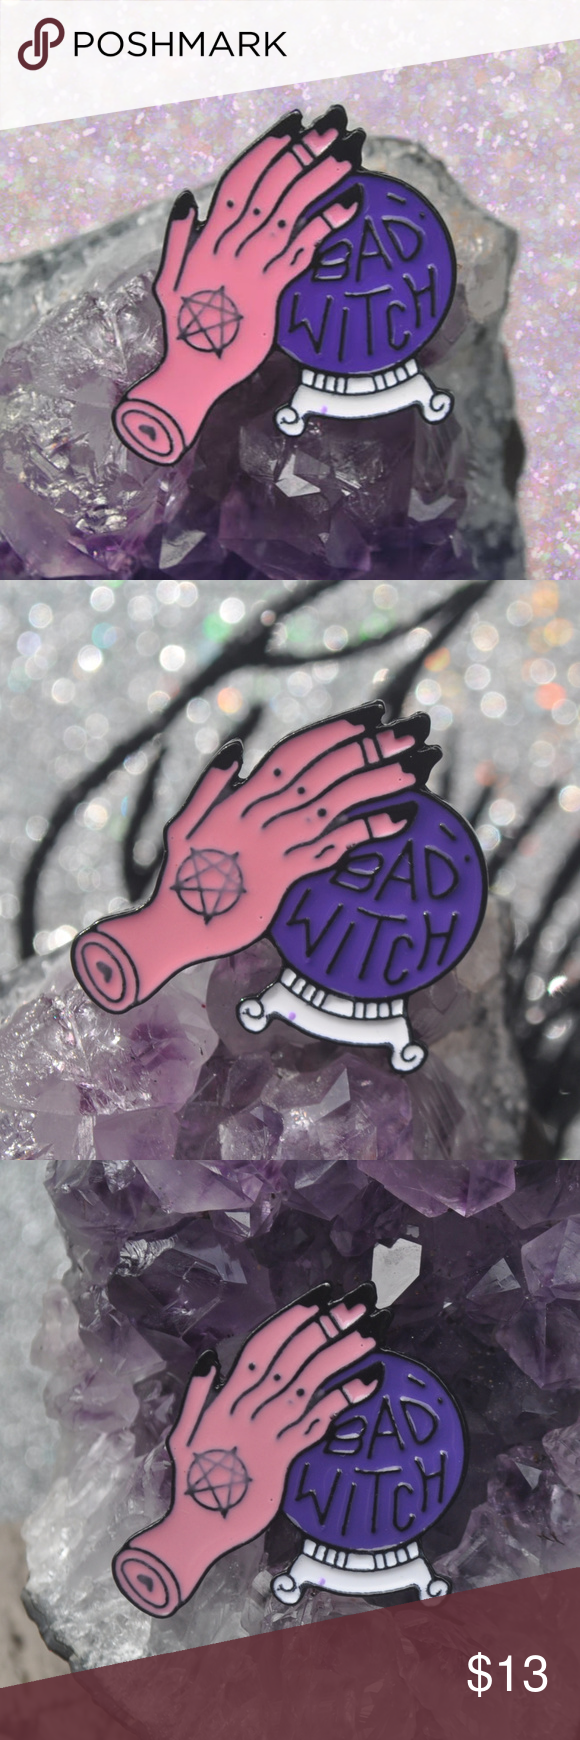 BAD WITCH Lapel Pin Brand New  / metal lapel fantasy halloween horror boo eek chic lover love spooky creepy weirdo weird strange unusual crazy psycho bae babe club camp queen black darkness ghoul monster creature nightmare vampire night sexy beauty beautiful gorgeous girls gothic goth punk rock rocker pins brooch alternative princess witchy witches witchcraft magical magic spells spell haunted haunt scary costume freak freaky pretty boss colorful crystal ball balls fortune teller hand body mysti